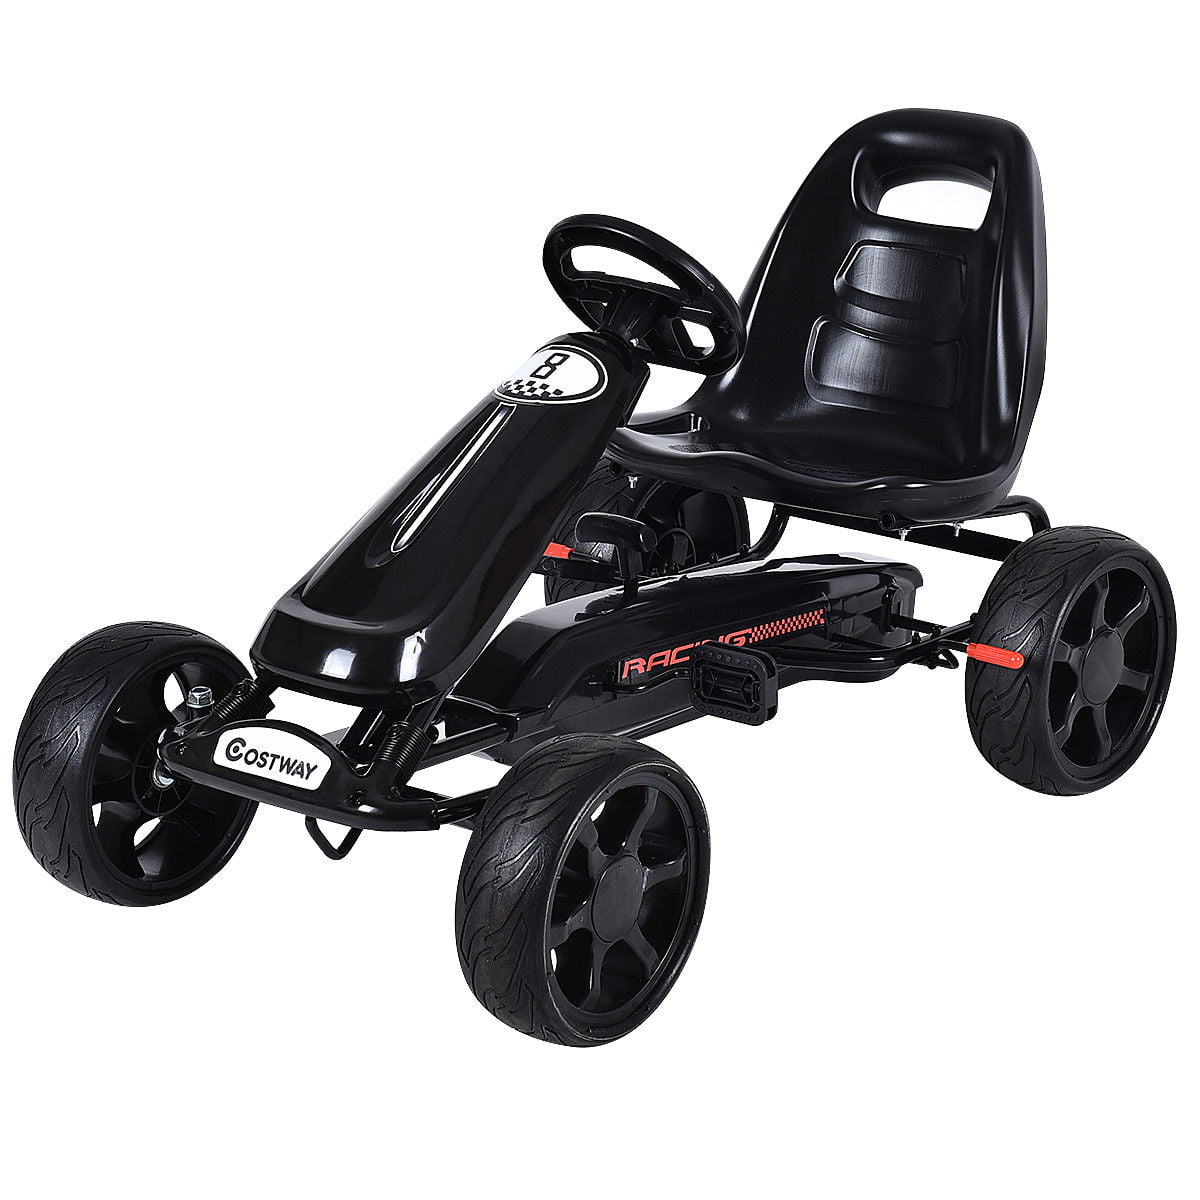 Costway Xmas Gift Go Kart Kids Ride On Car Pedal Powered Car 4 Wheel Racer Toy Stealth Outdoor by Costway